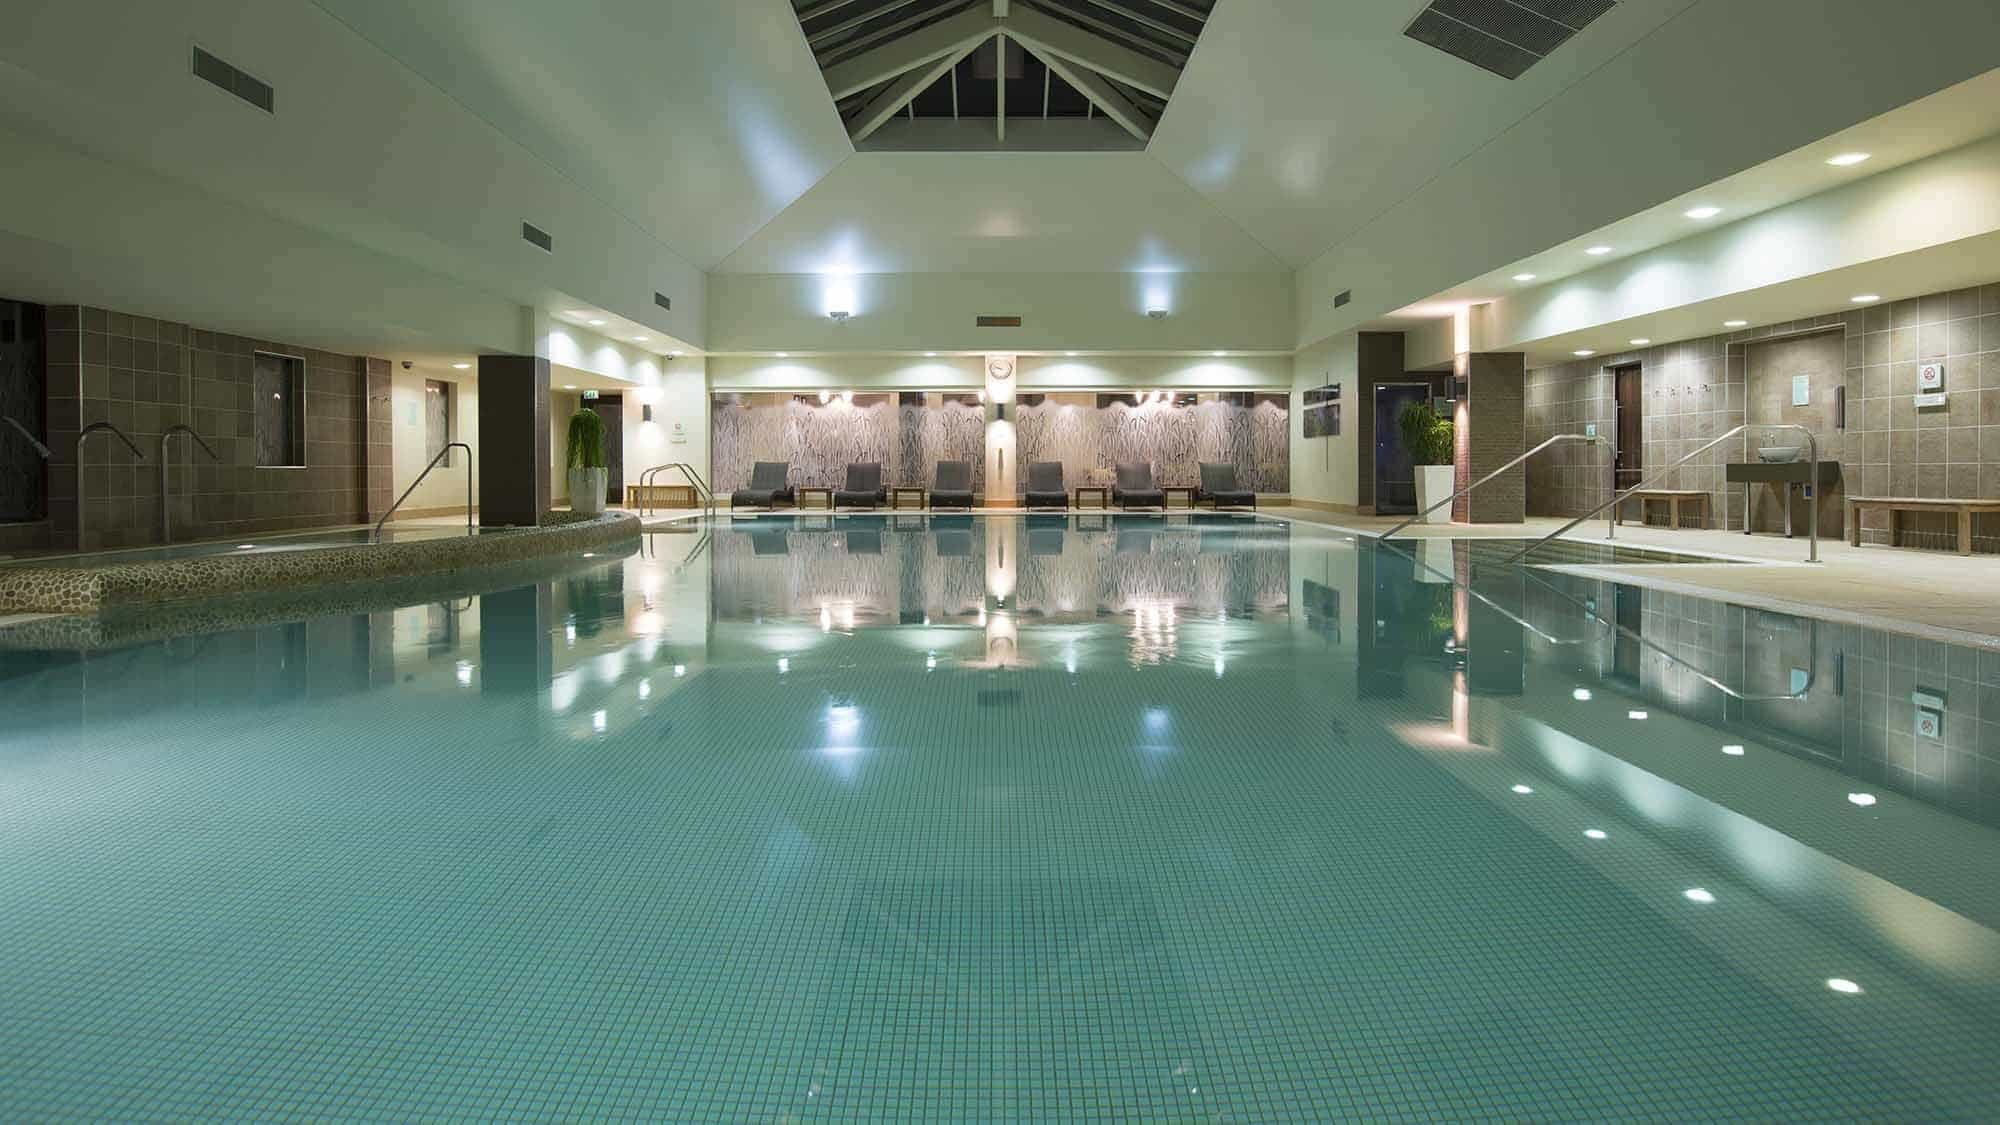 Rookery Hall Spa in Cheshire